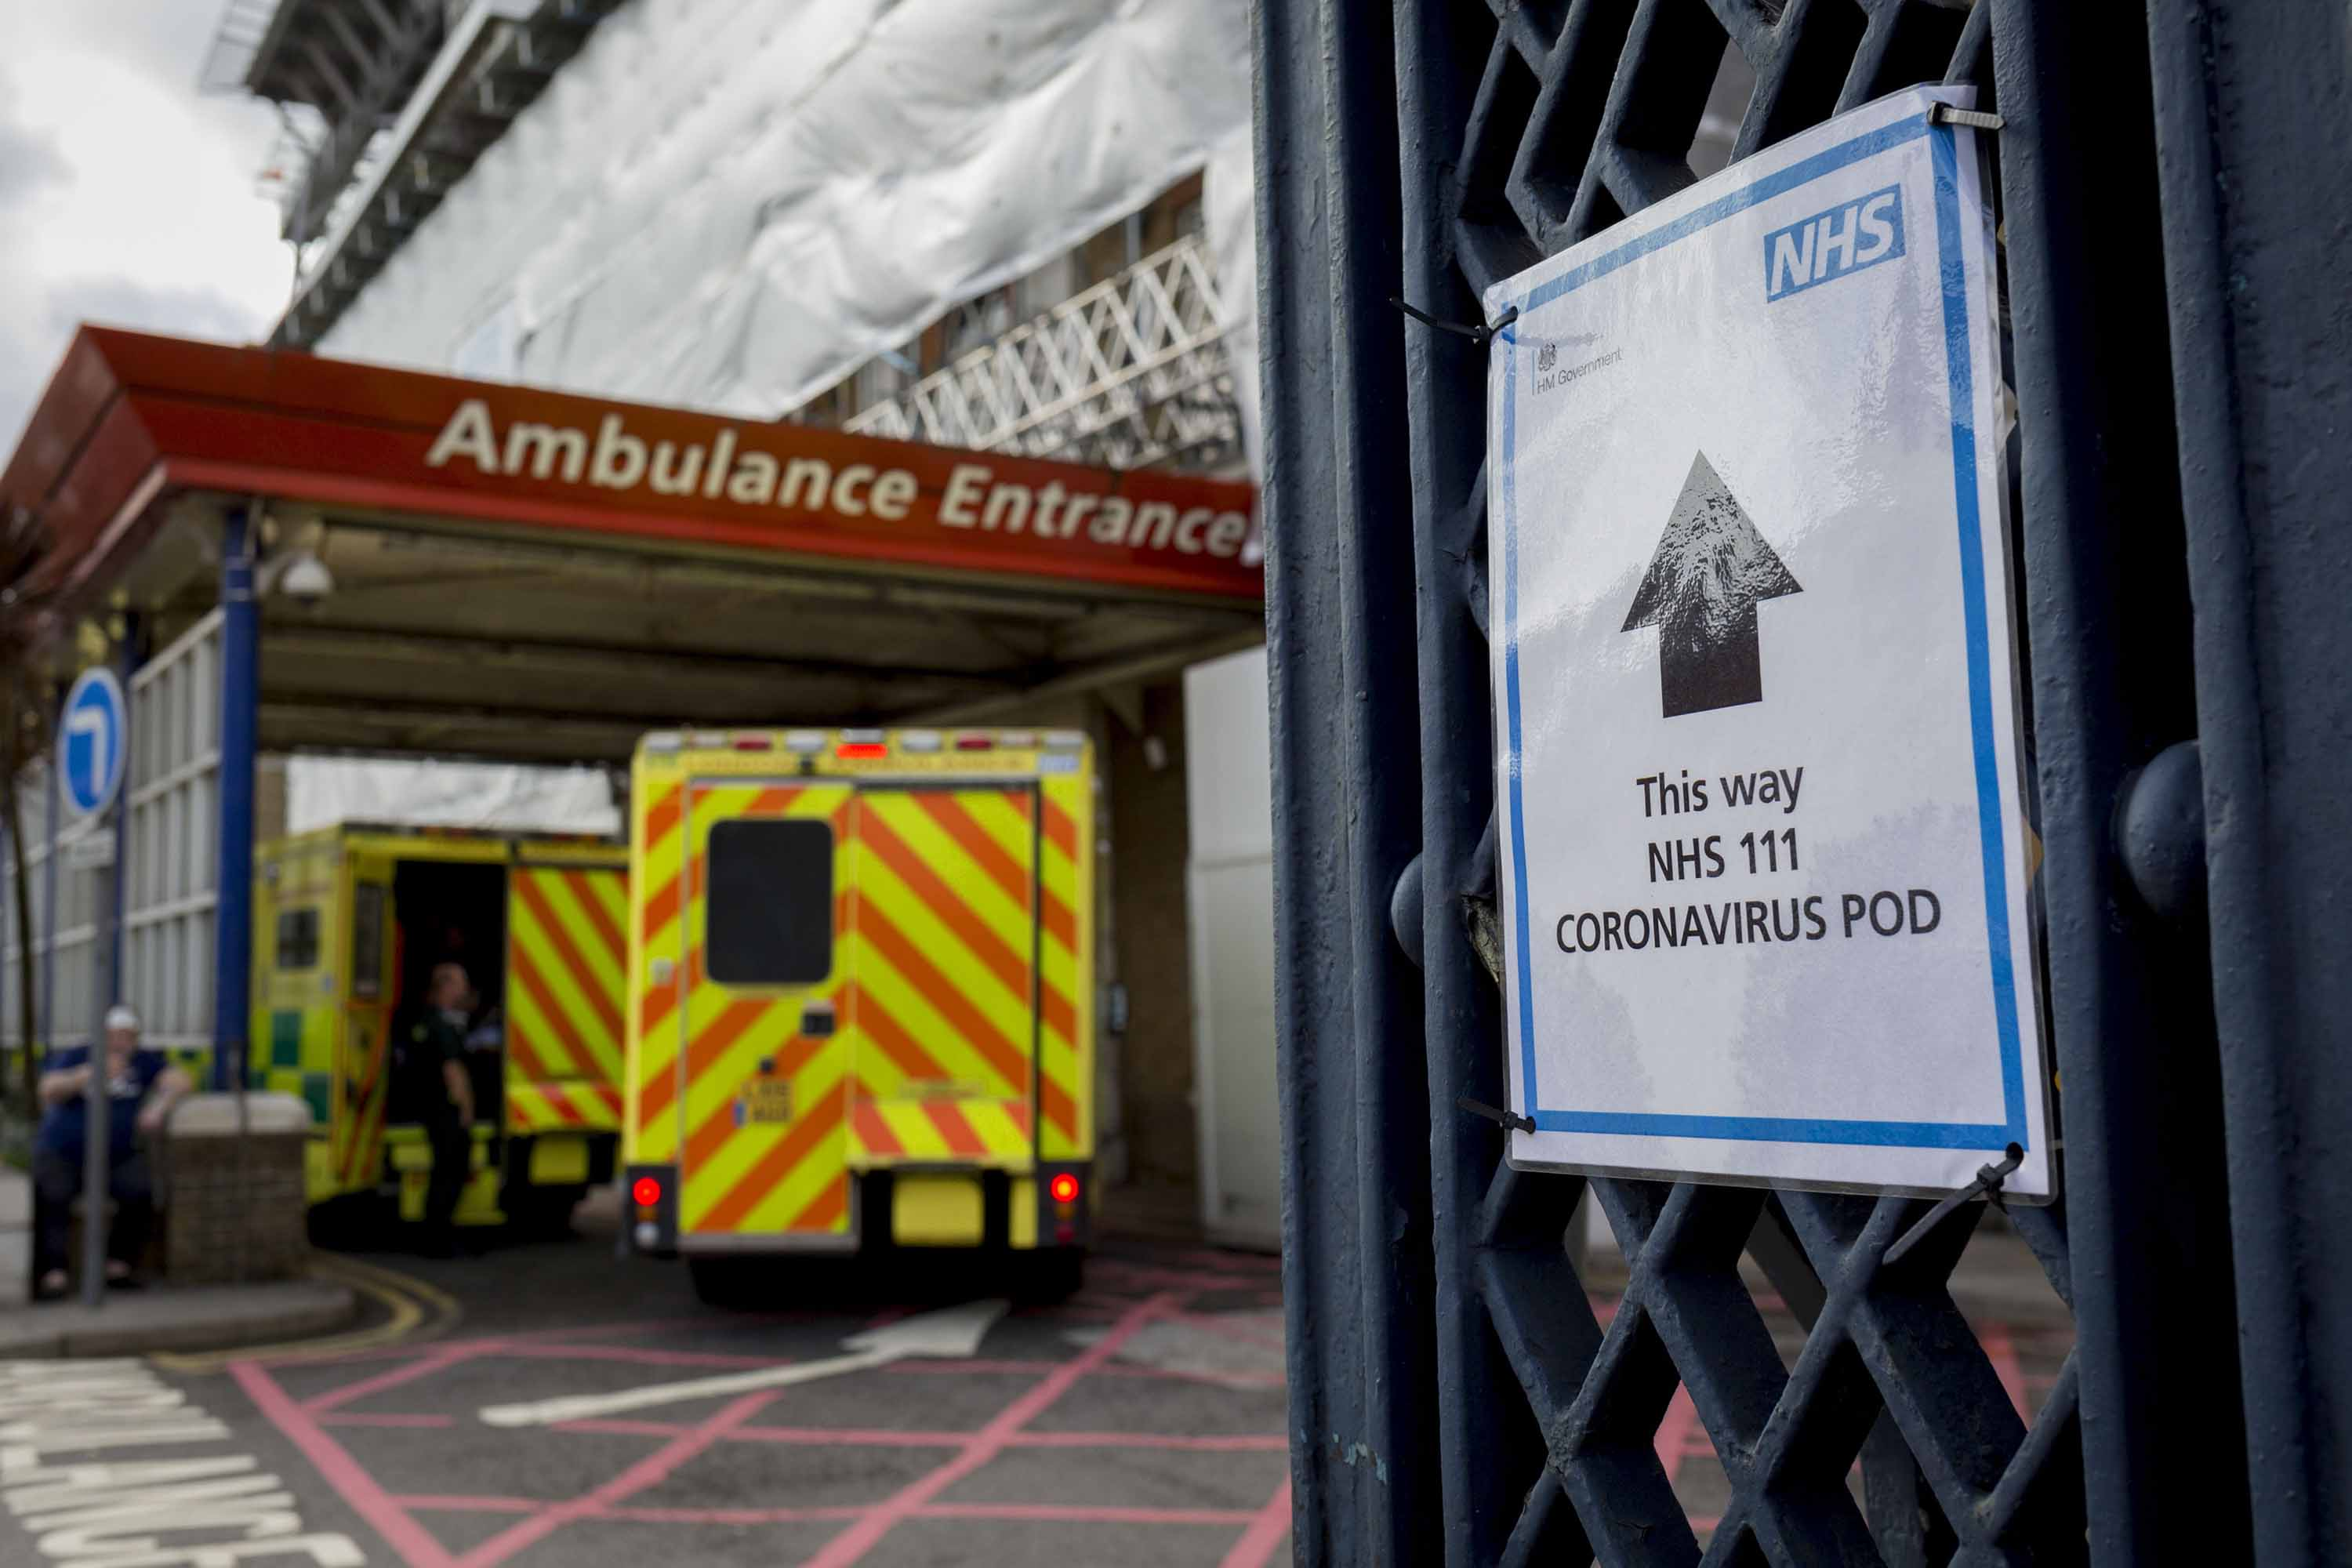 An NHS sign points towards a coronavirus testing pod at Kings College Hospital in Camberwell, south London, on March 11.